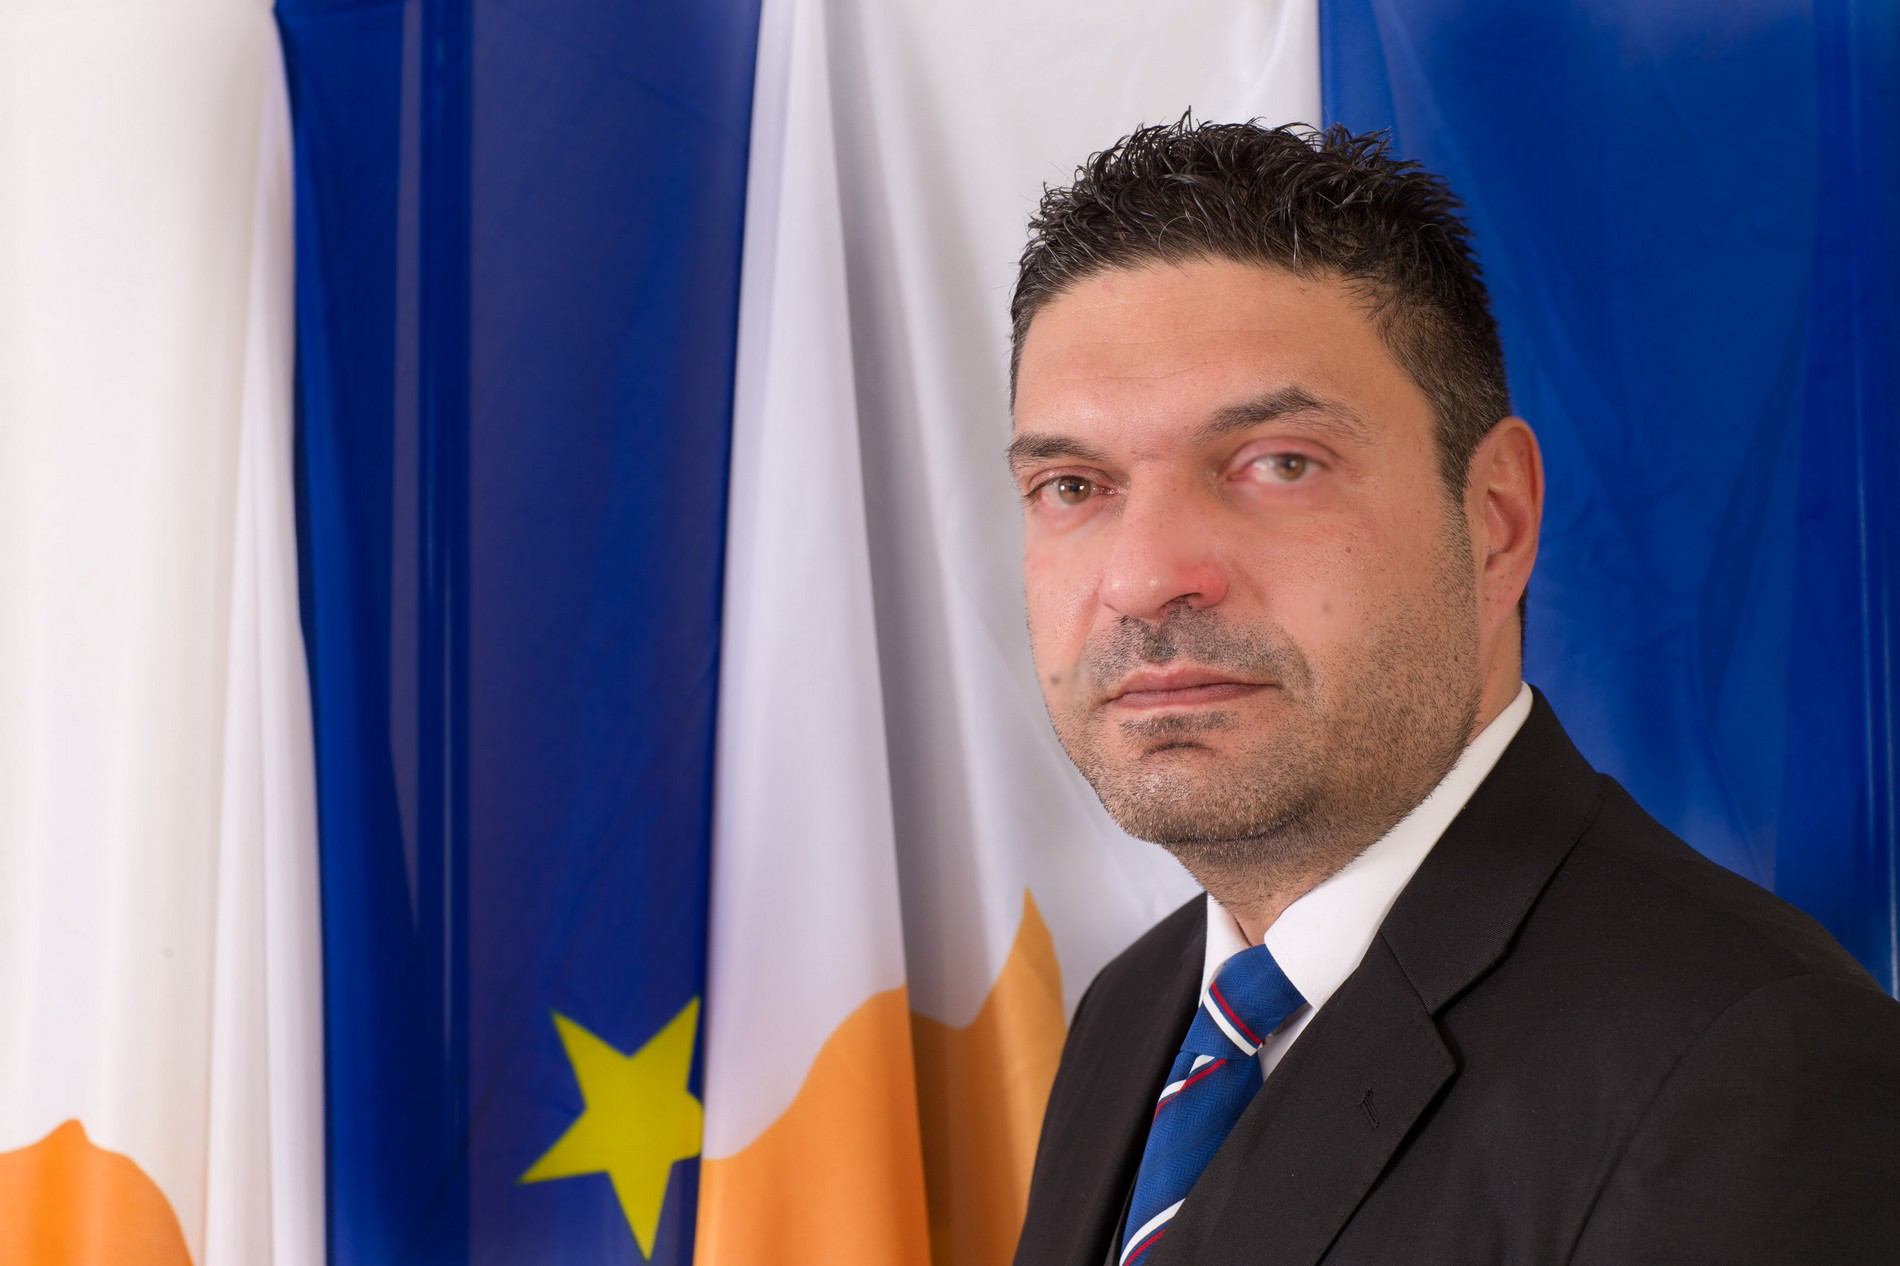 Minister Petrides to participate in the EU Justice and Home Affairs Council in Luxembourg